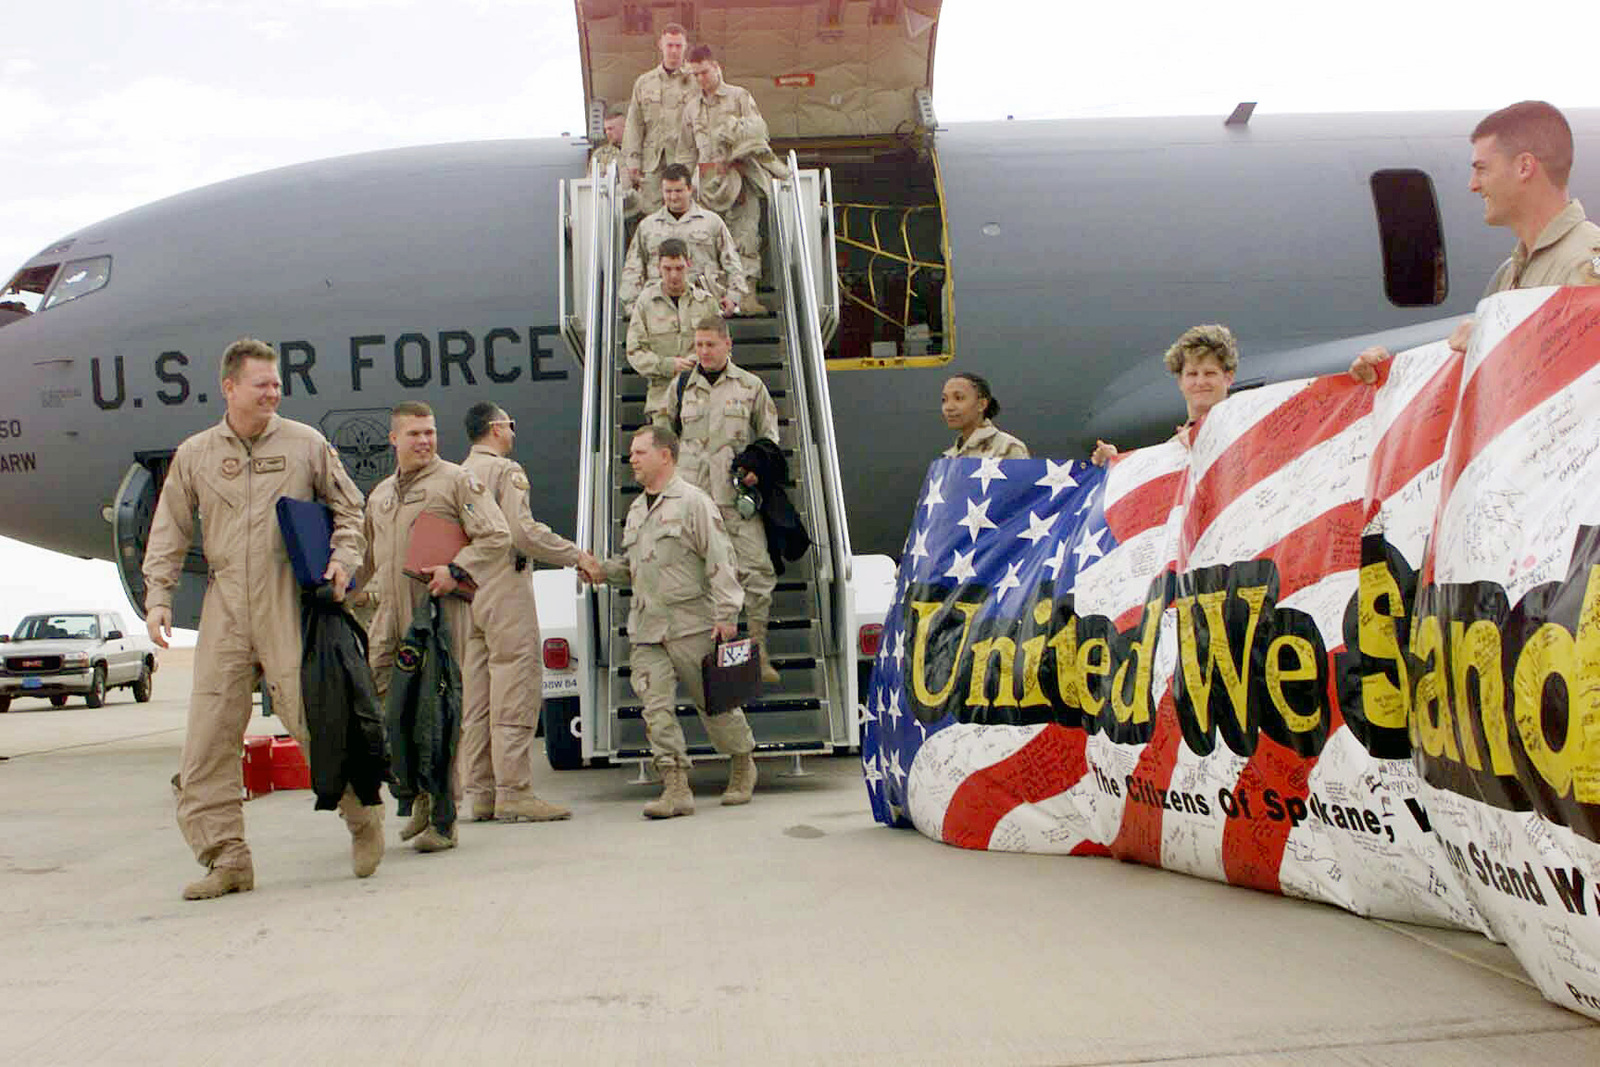 """As they come off the KC-135 Stratotanker, members from the 92nd and 97th Air Refueling Squadrons (ARS), Fairchild Air Force Base, Washington, are welcomed to Prince Sultan Air Base, Kingdom of Saudi Arabia, by members of the 363rd Expeditionary Air Refueling Squadron (EARS). Residents of Spokane, WA, signed the """"United We Stand"""" banner"""